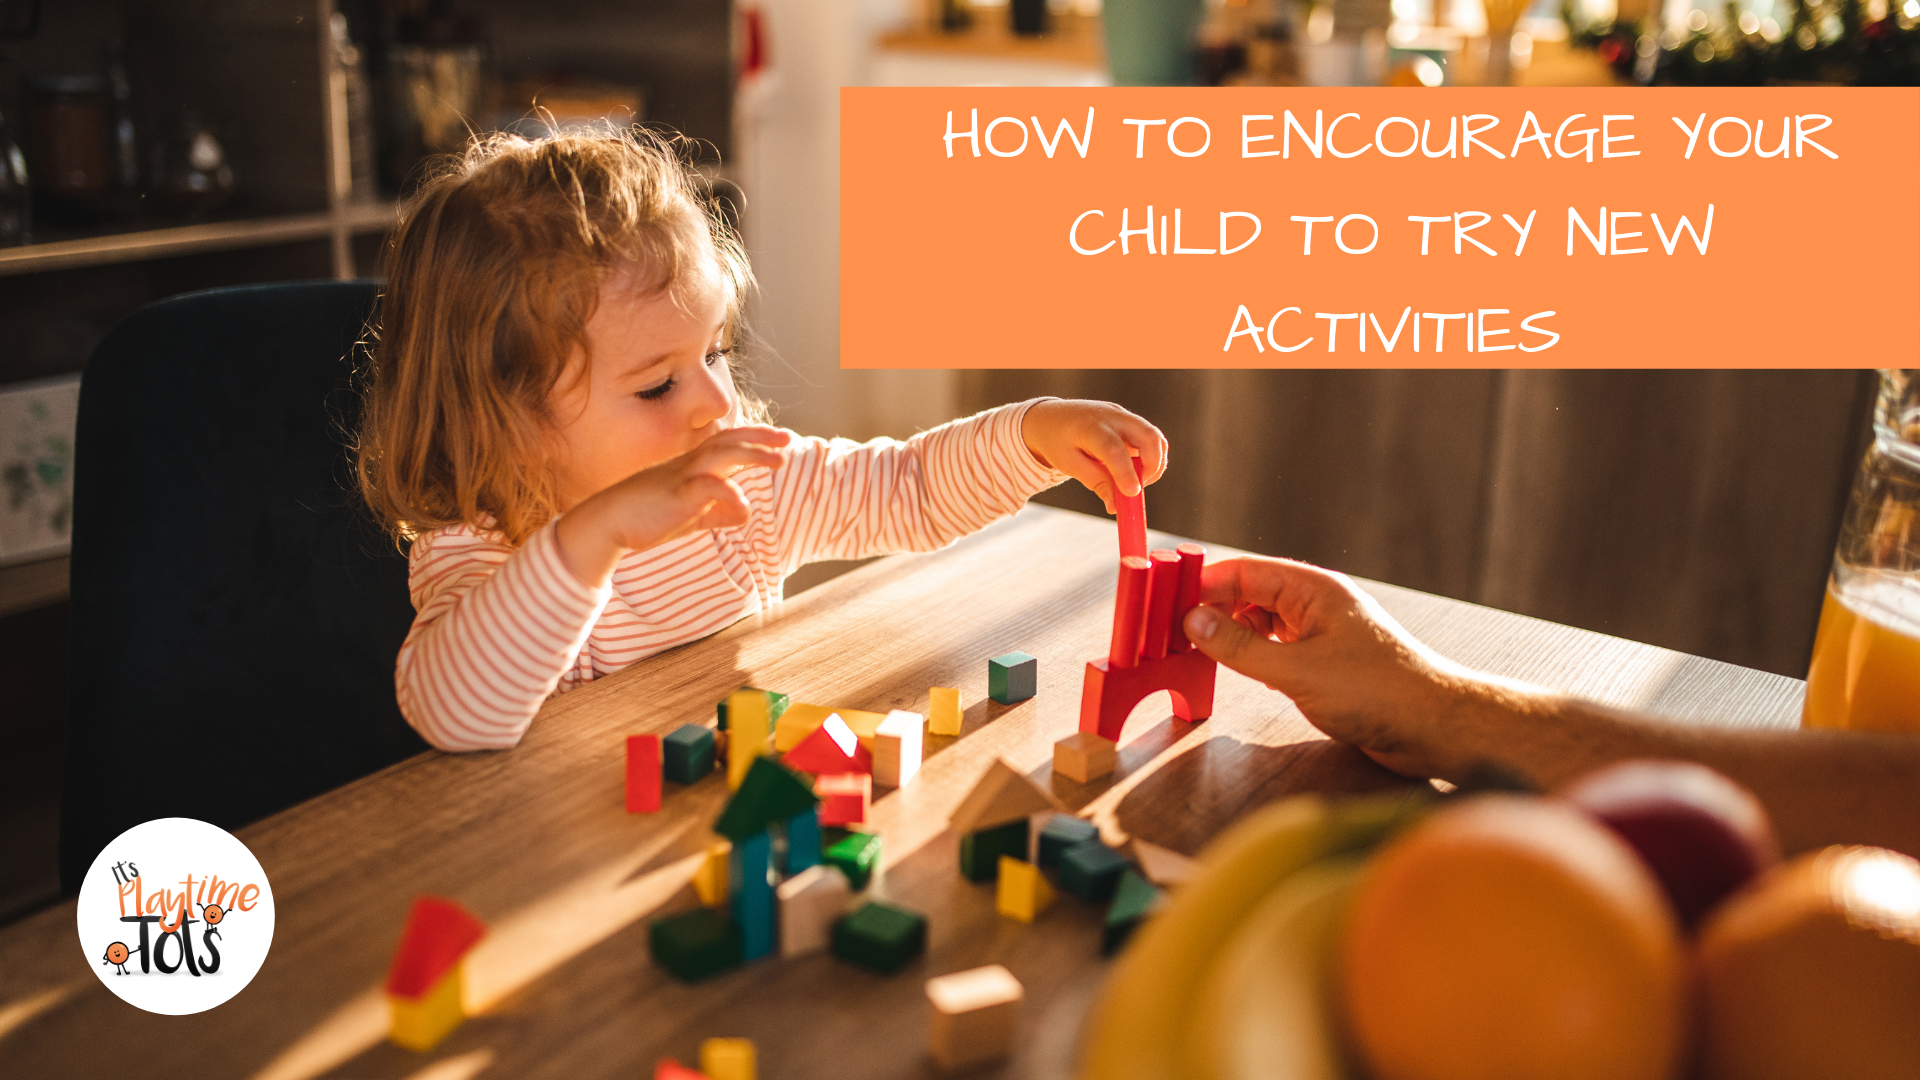 How to encourage your child to try new different activities